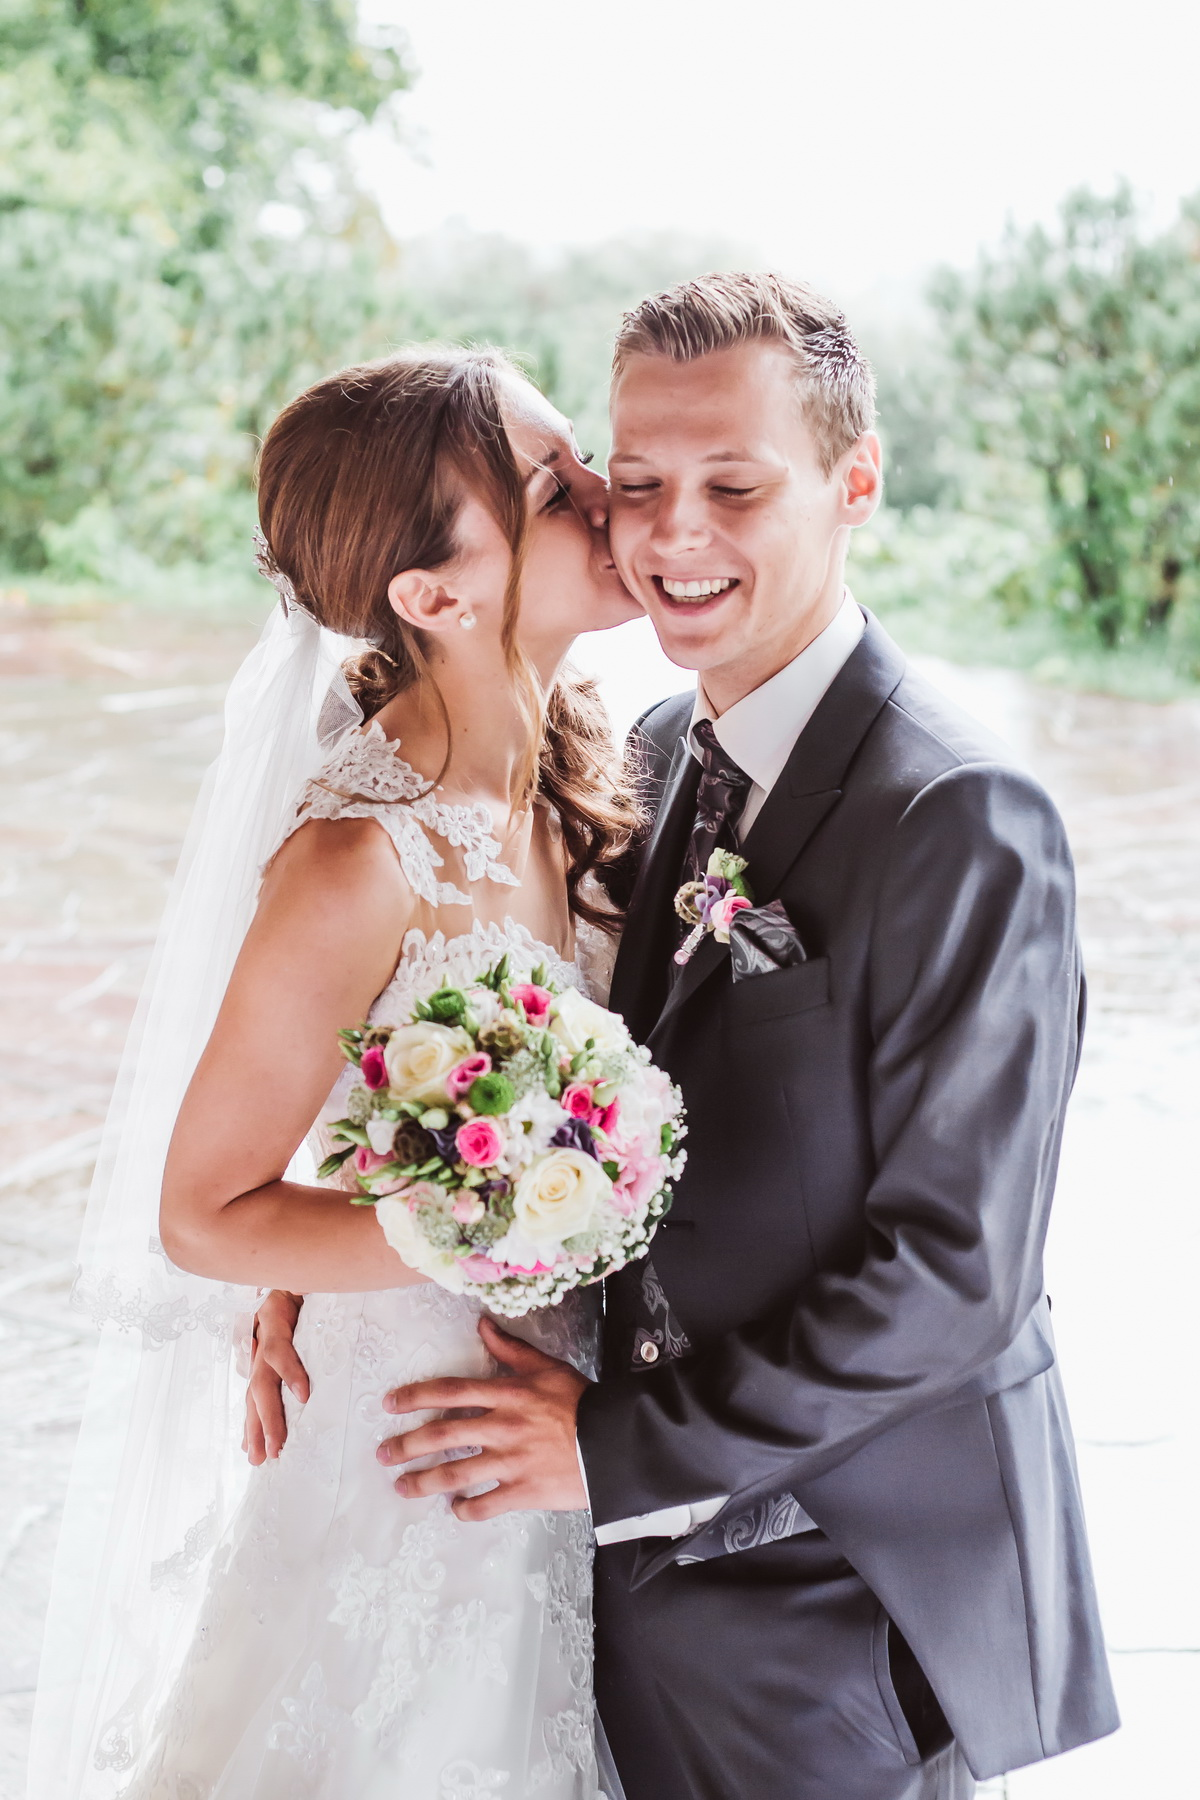 Claudia Sittig Photography - Couple - Hochzeit  Wedding - Selina und Richard 34